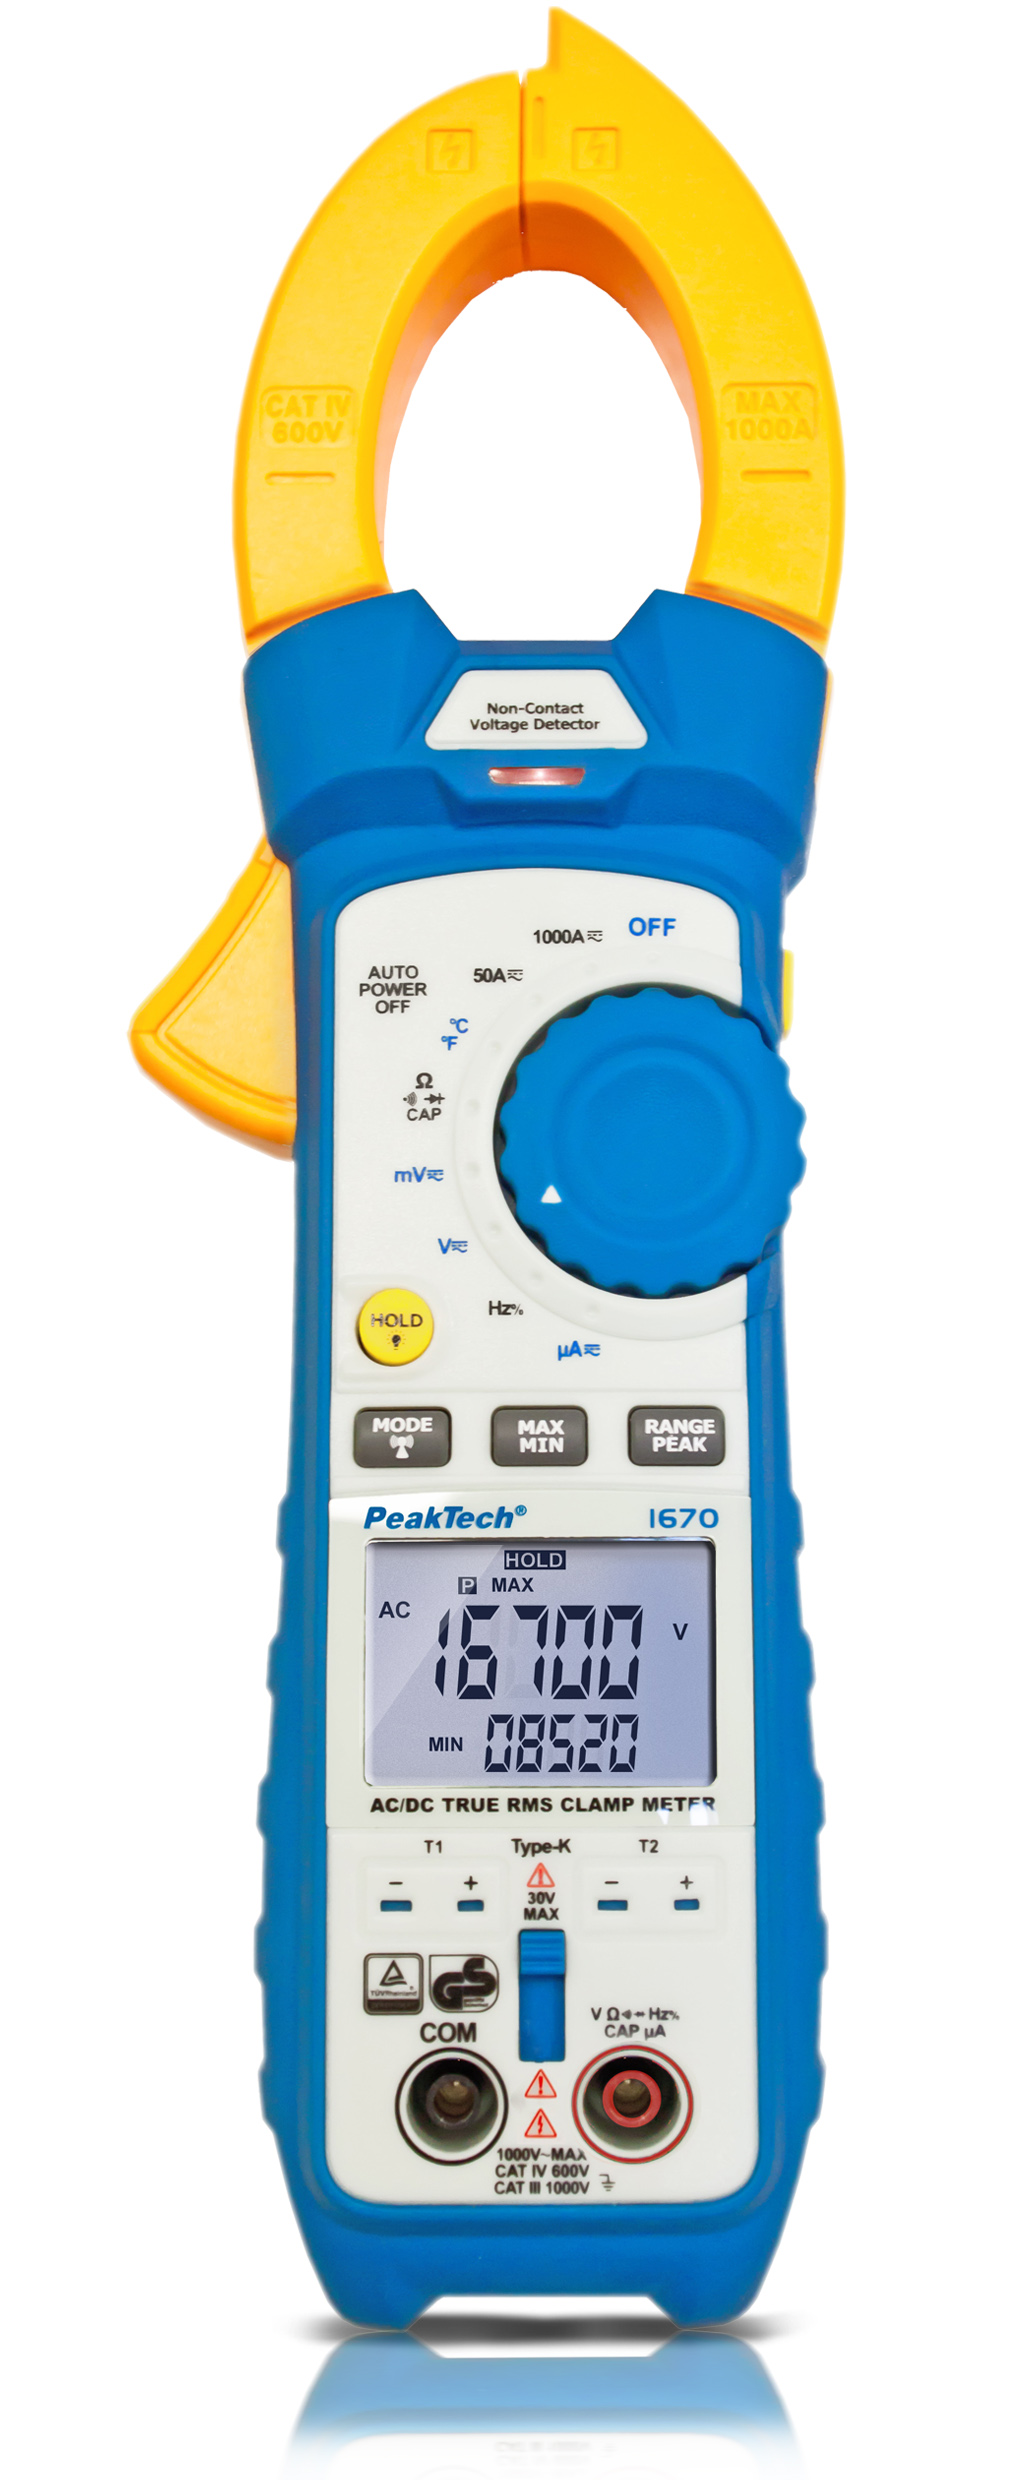 «PeakTech® P 1670» TrueRMS clamp meter 50,000 counts 1000 A AC/DC, BT